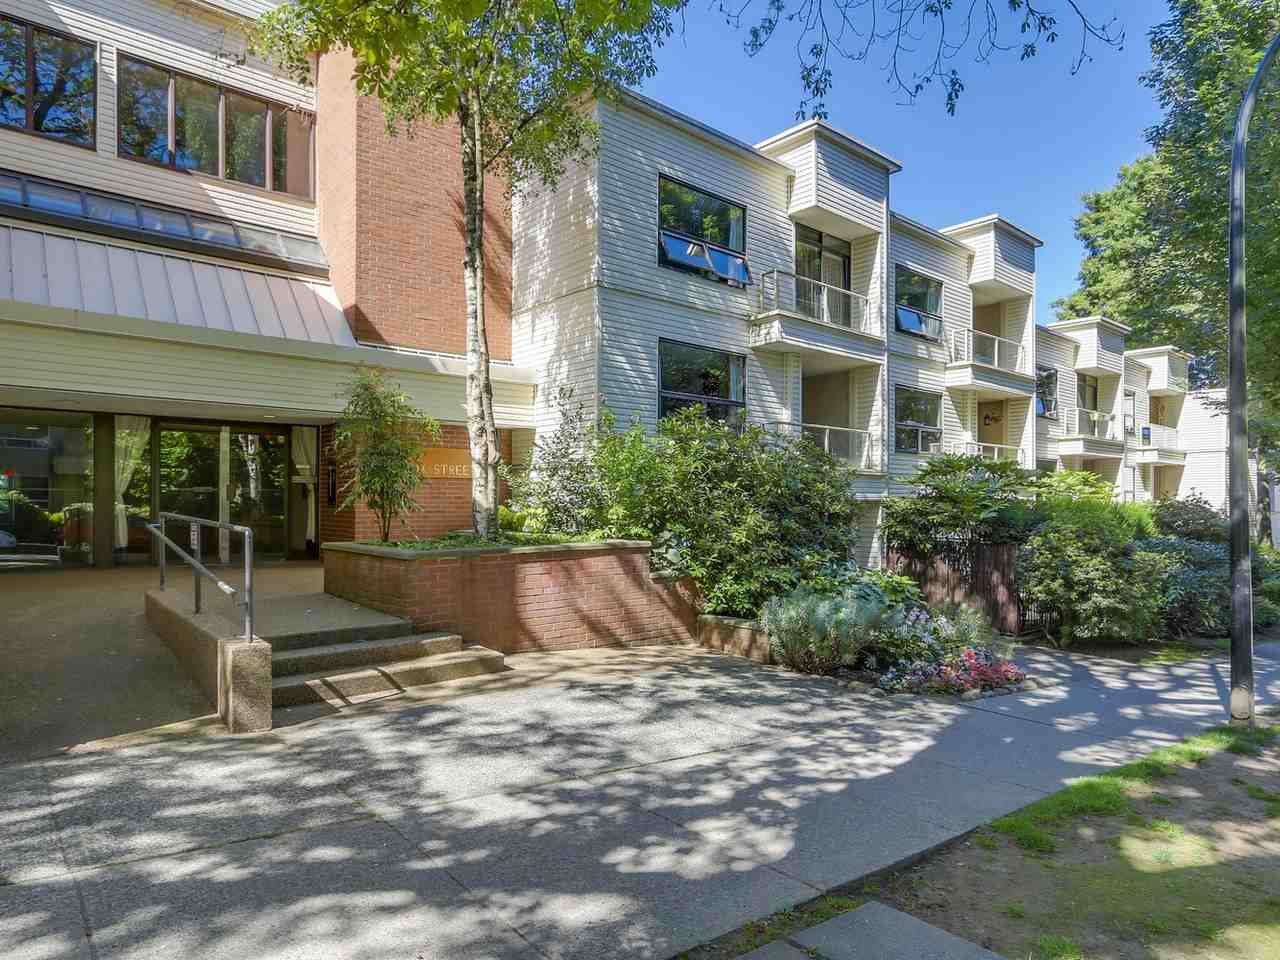 Main Photo: 203 1350 COMOX STREET in Vancouver: West End VW Condo for sale (Vancouver West)  : MLS® # R2096404